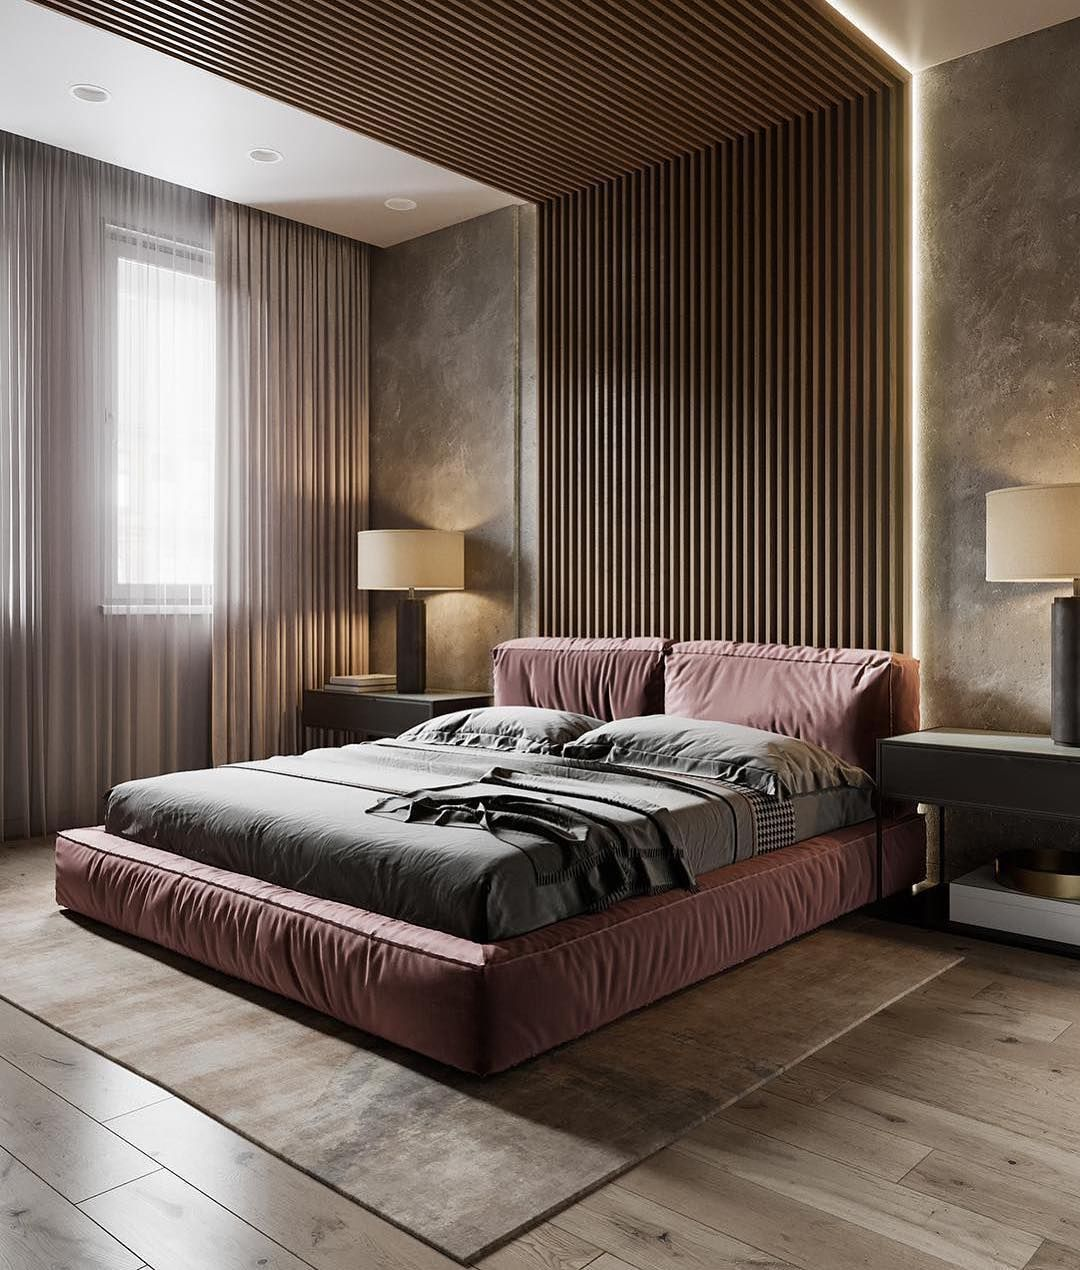 Marvelous bedroom design with crimson platform bed and slatted accent wall